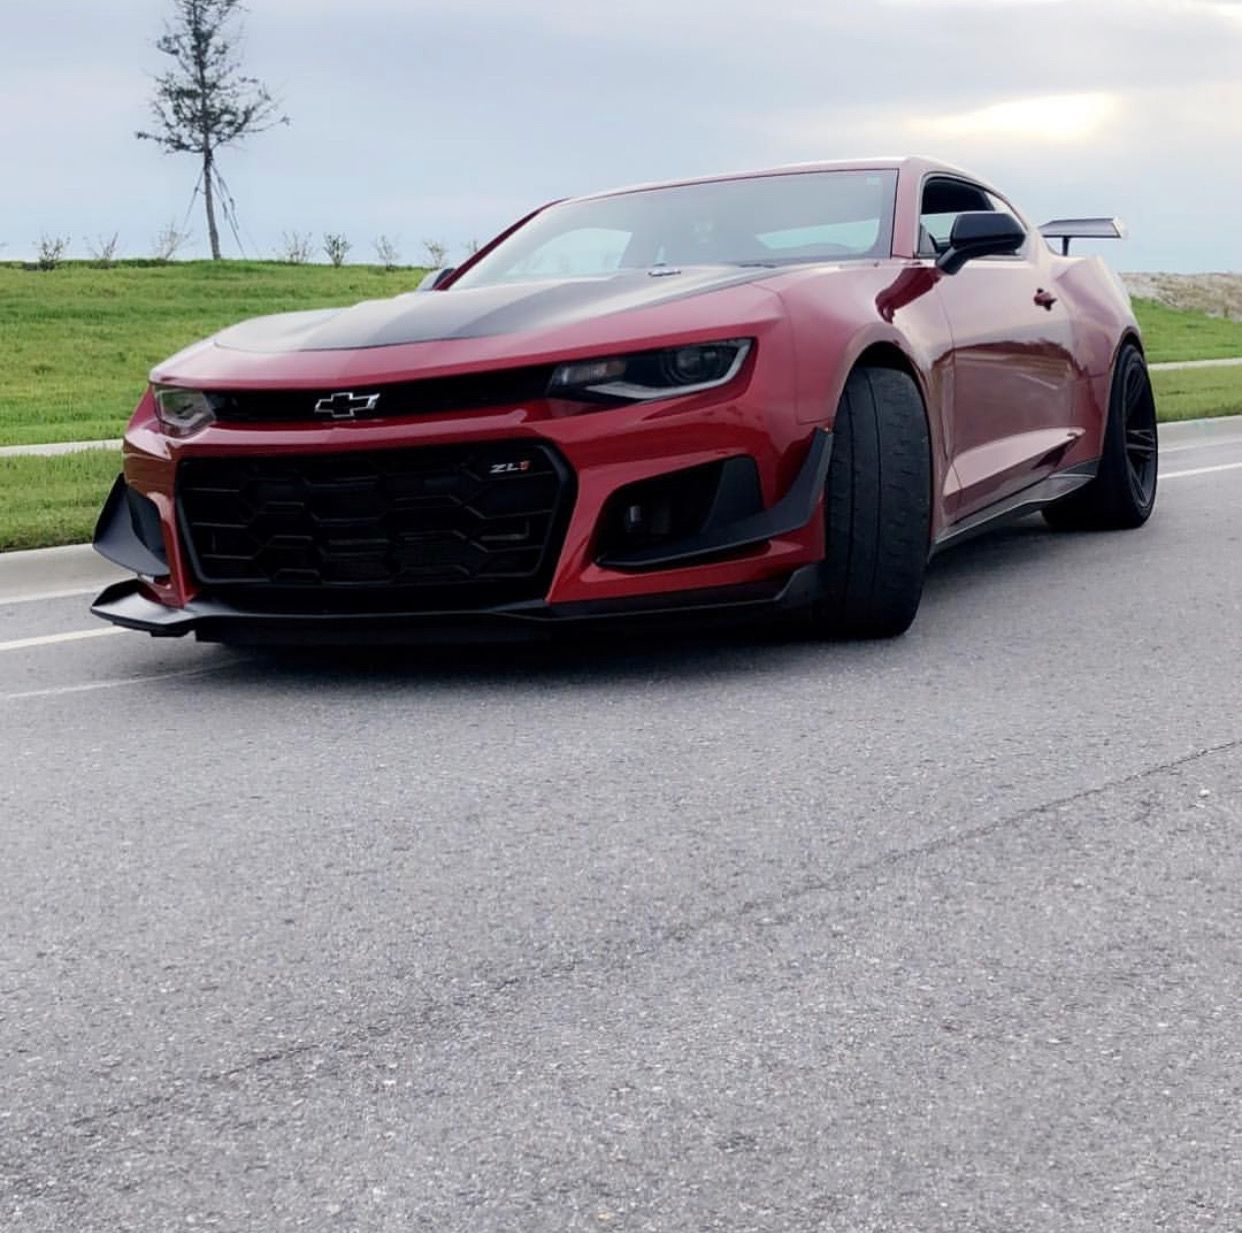 Chevrolet Camaro Zl1 1le Painted In Garnet Red Photo Taken By Nick1021990 On Instagram Owned By Nick Chevrolet Camaro Chevrolet Camaro Zl1 Chevy Camaro Zl1